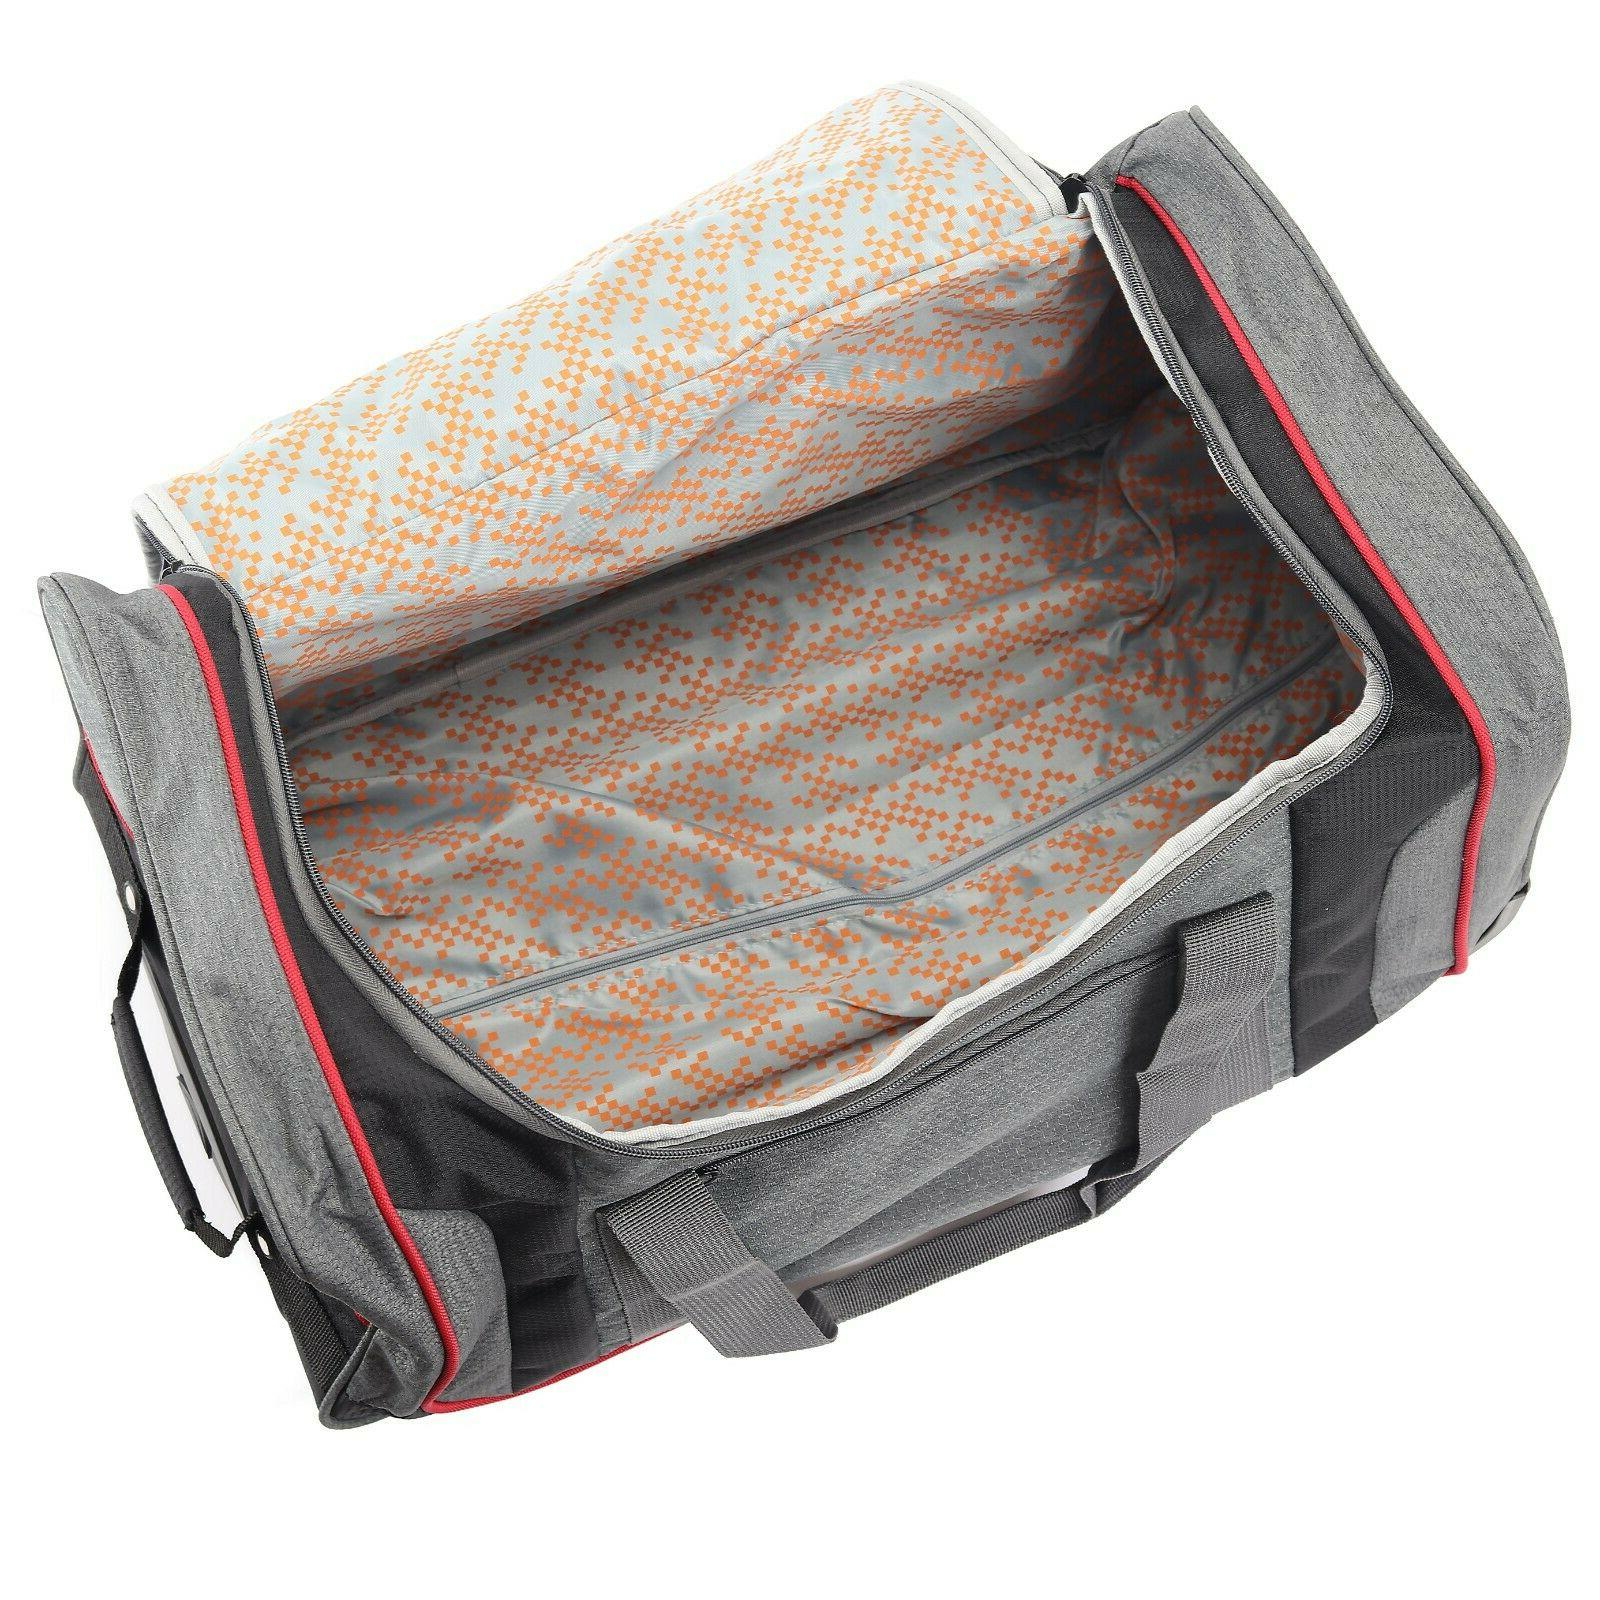 22 in Rolling Wheeled Duffel On Travel Suitcase Luggage